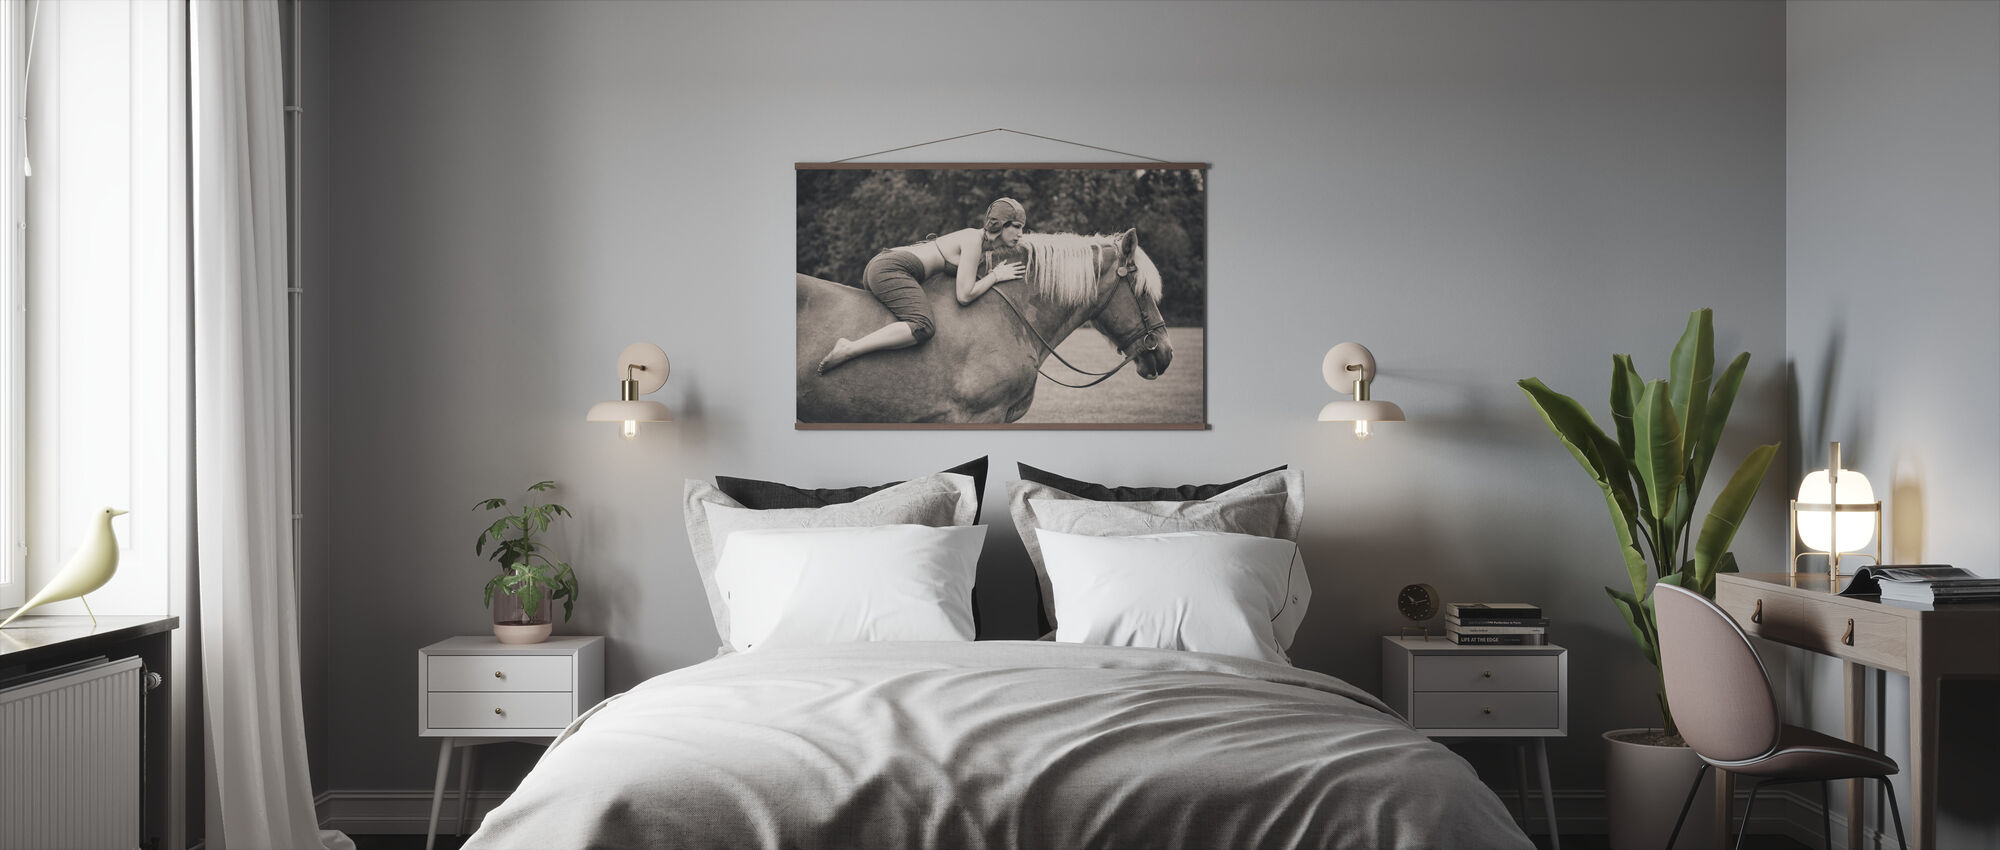 Off to the Races - Poster - Bedroom